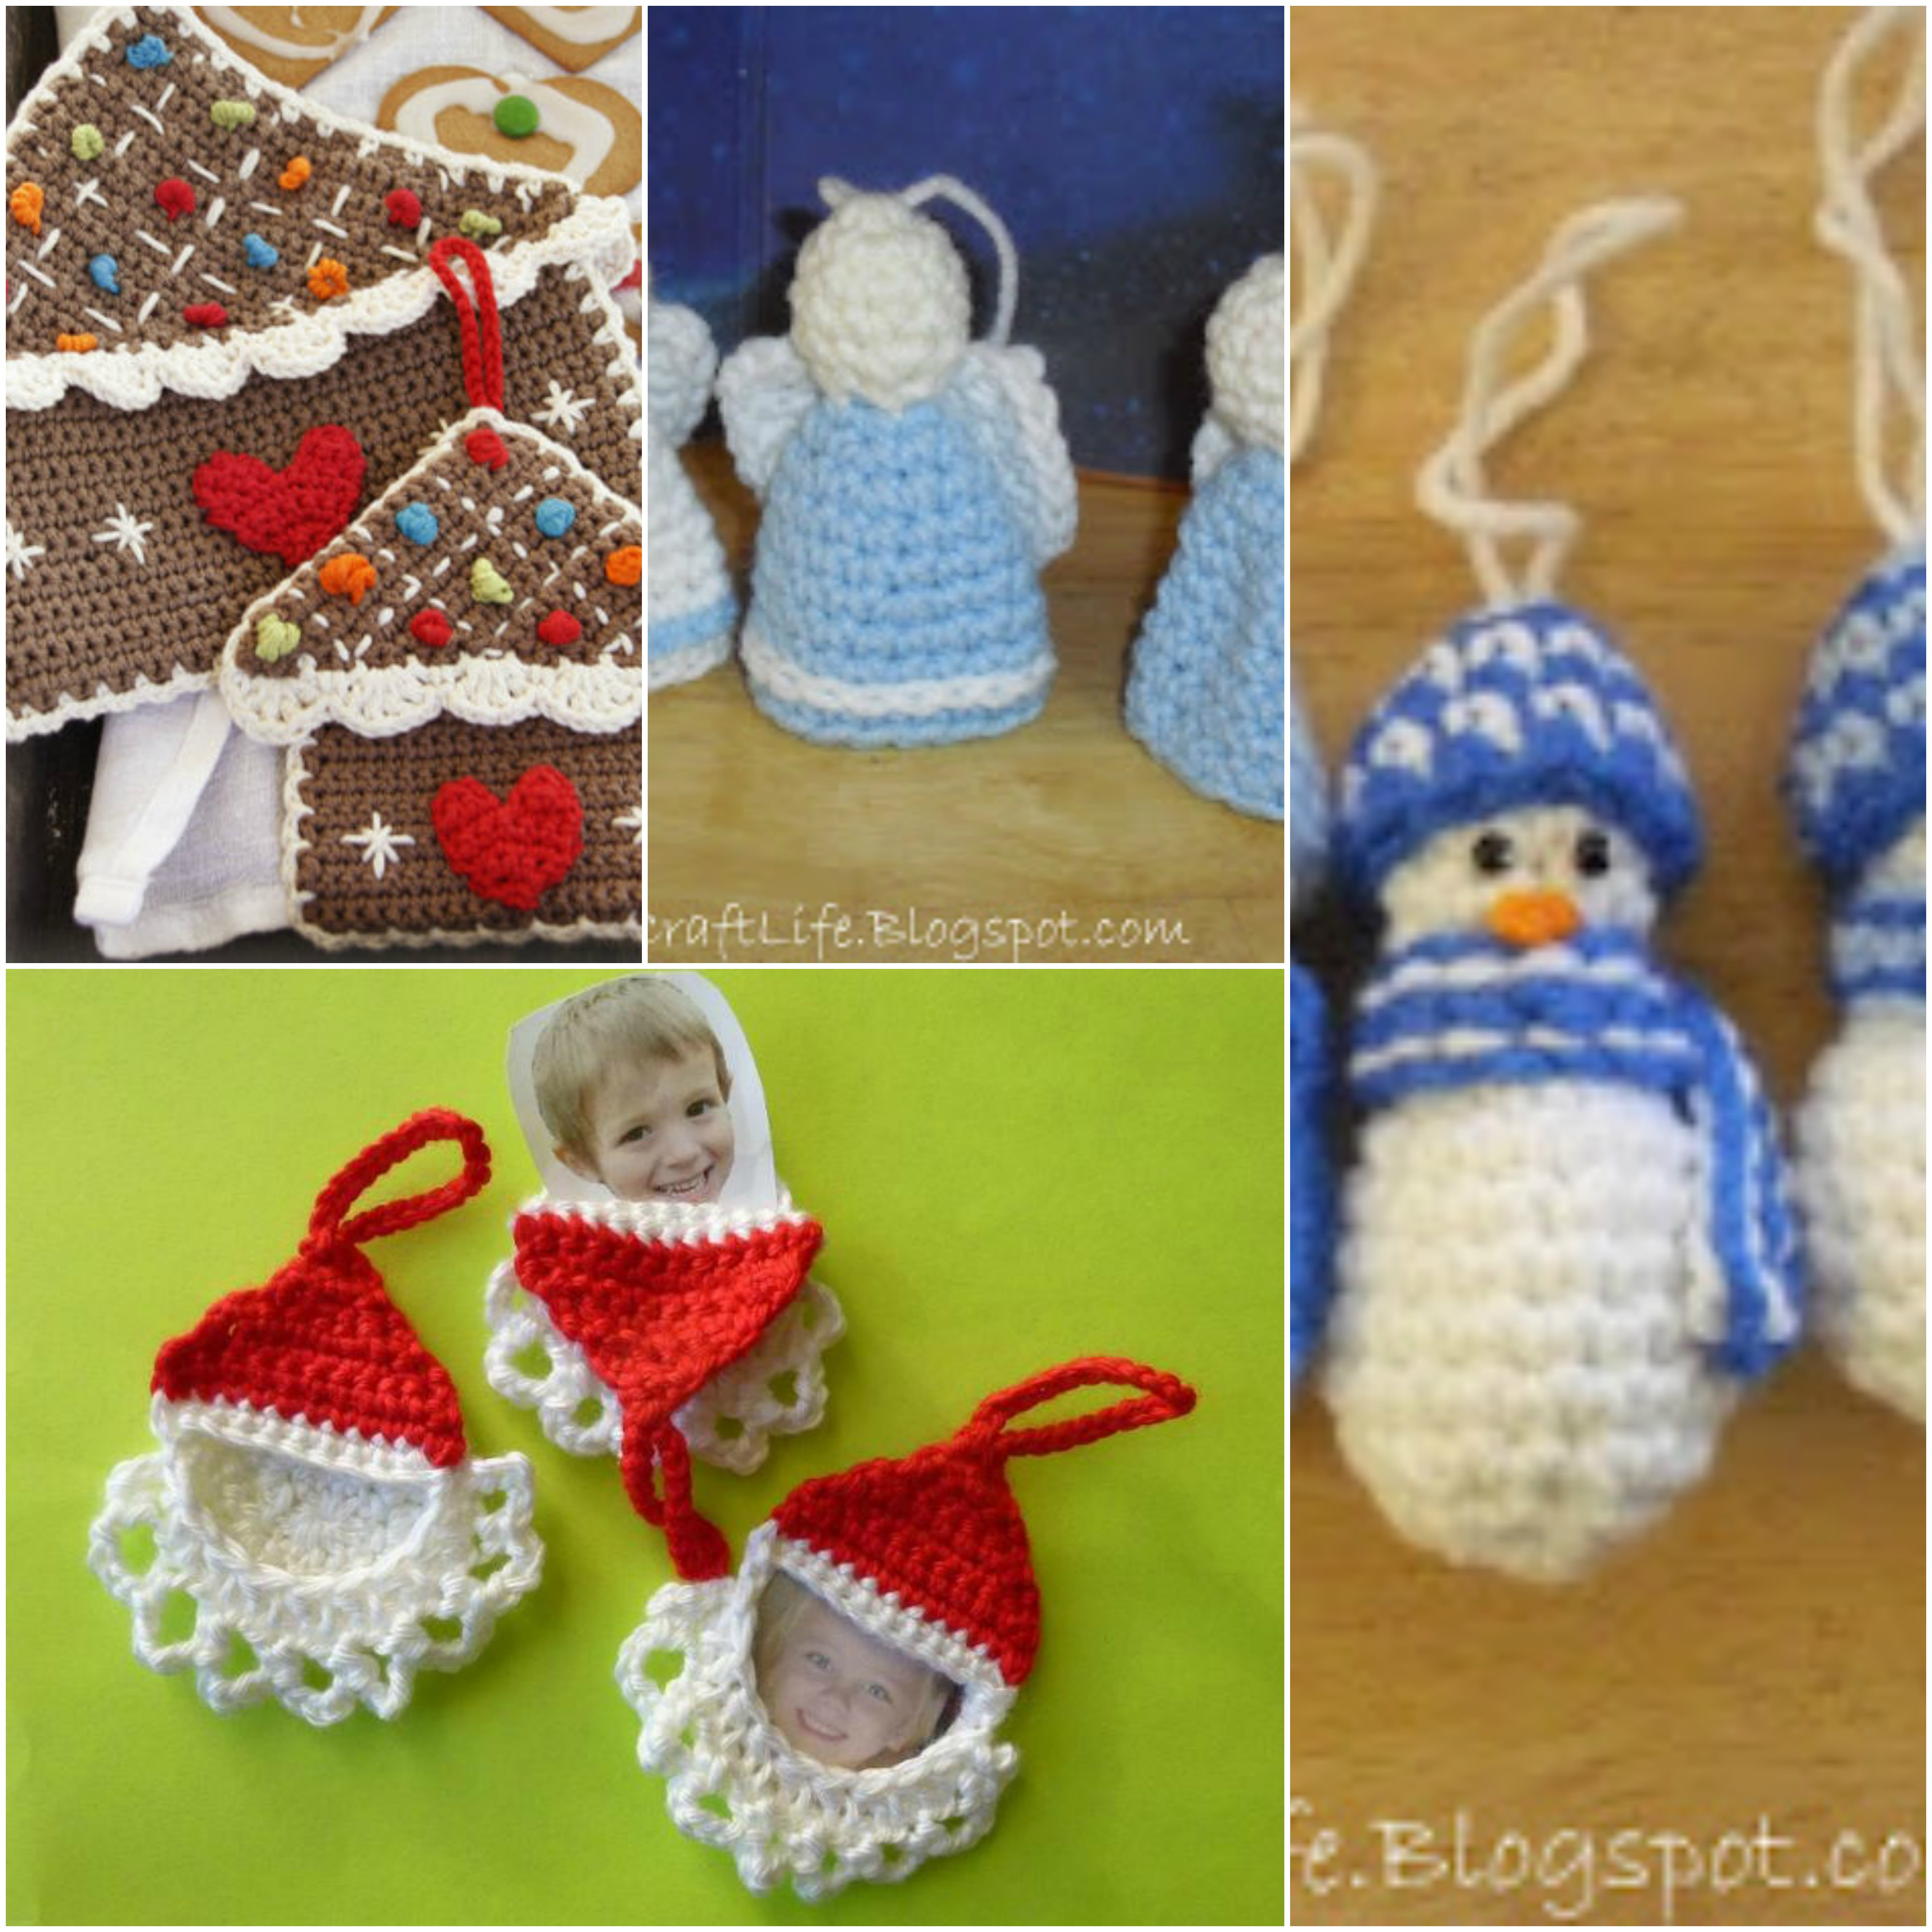 christmas ornaments - WittyCrafts.com